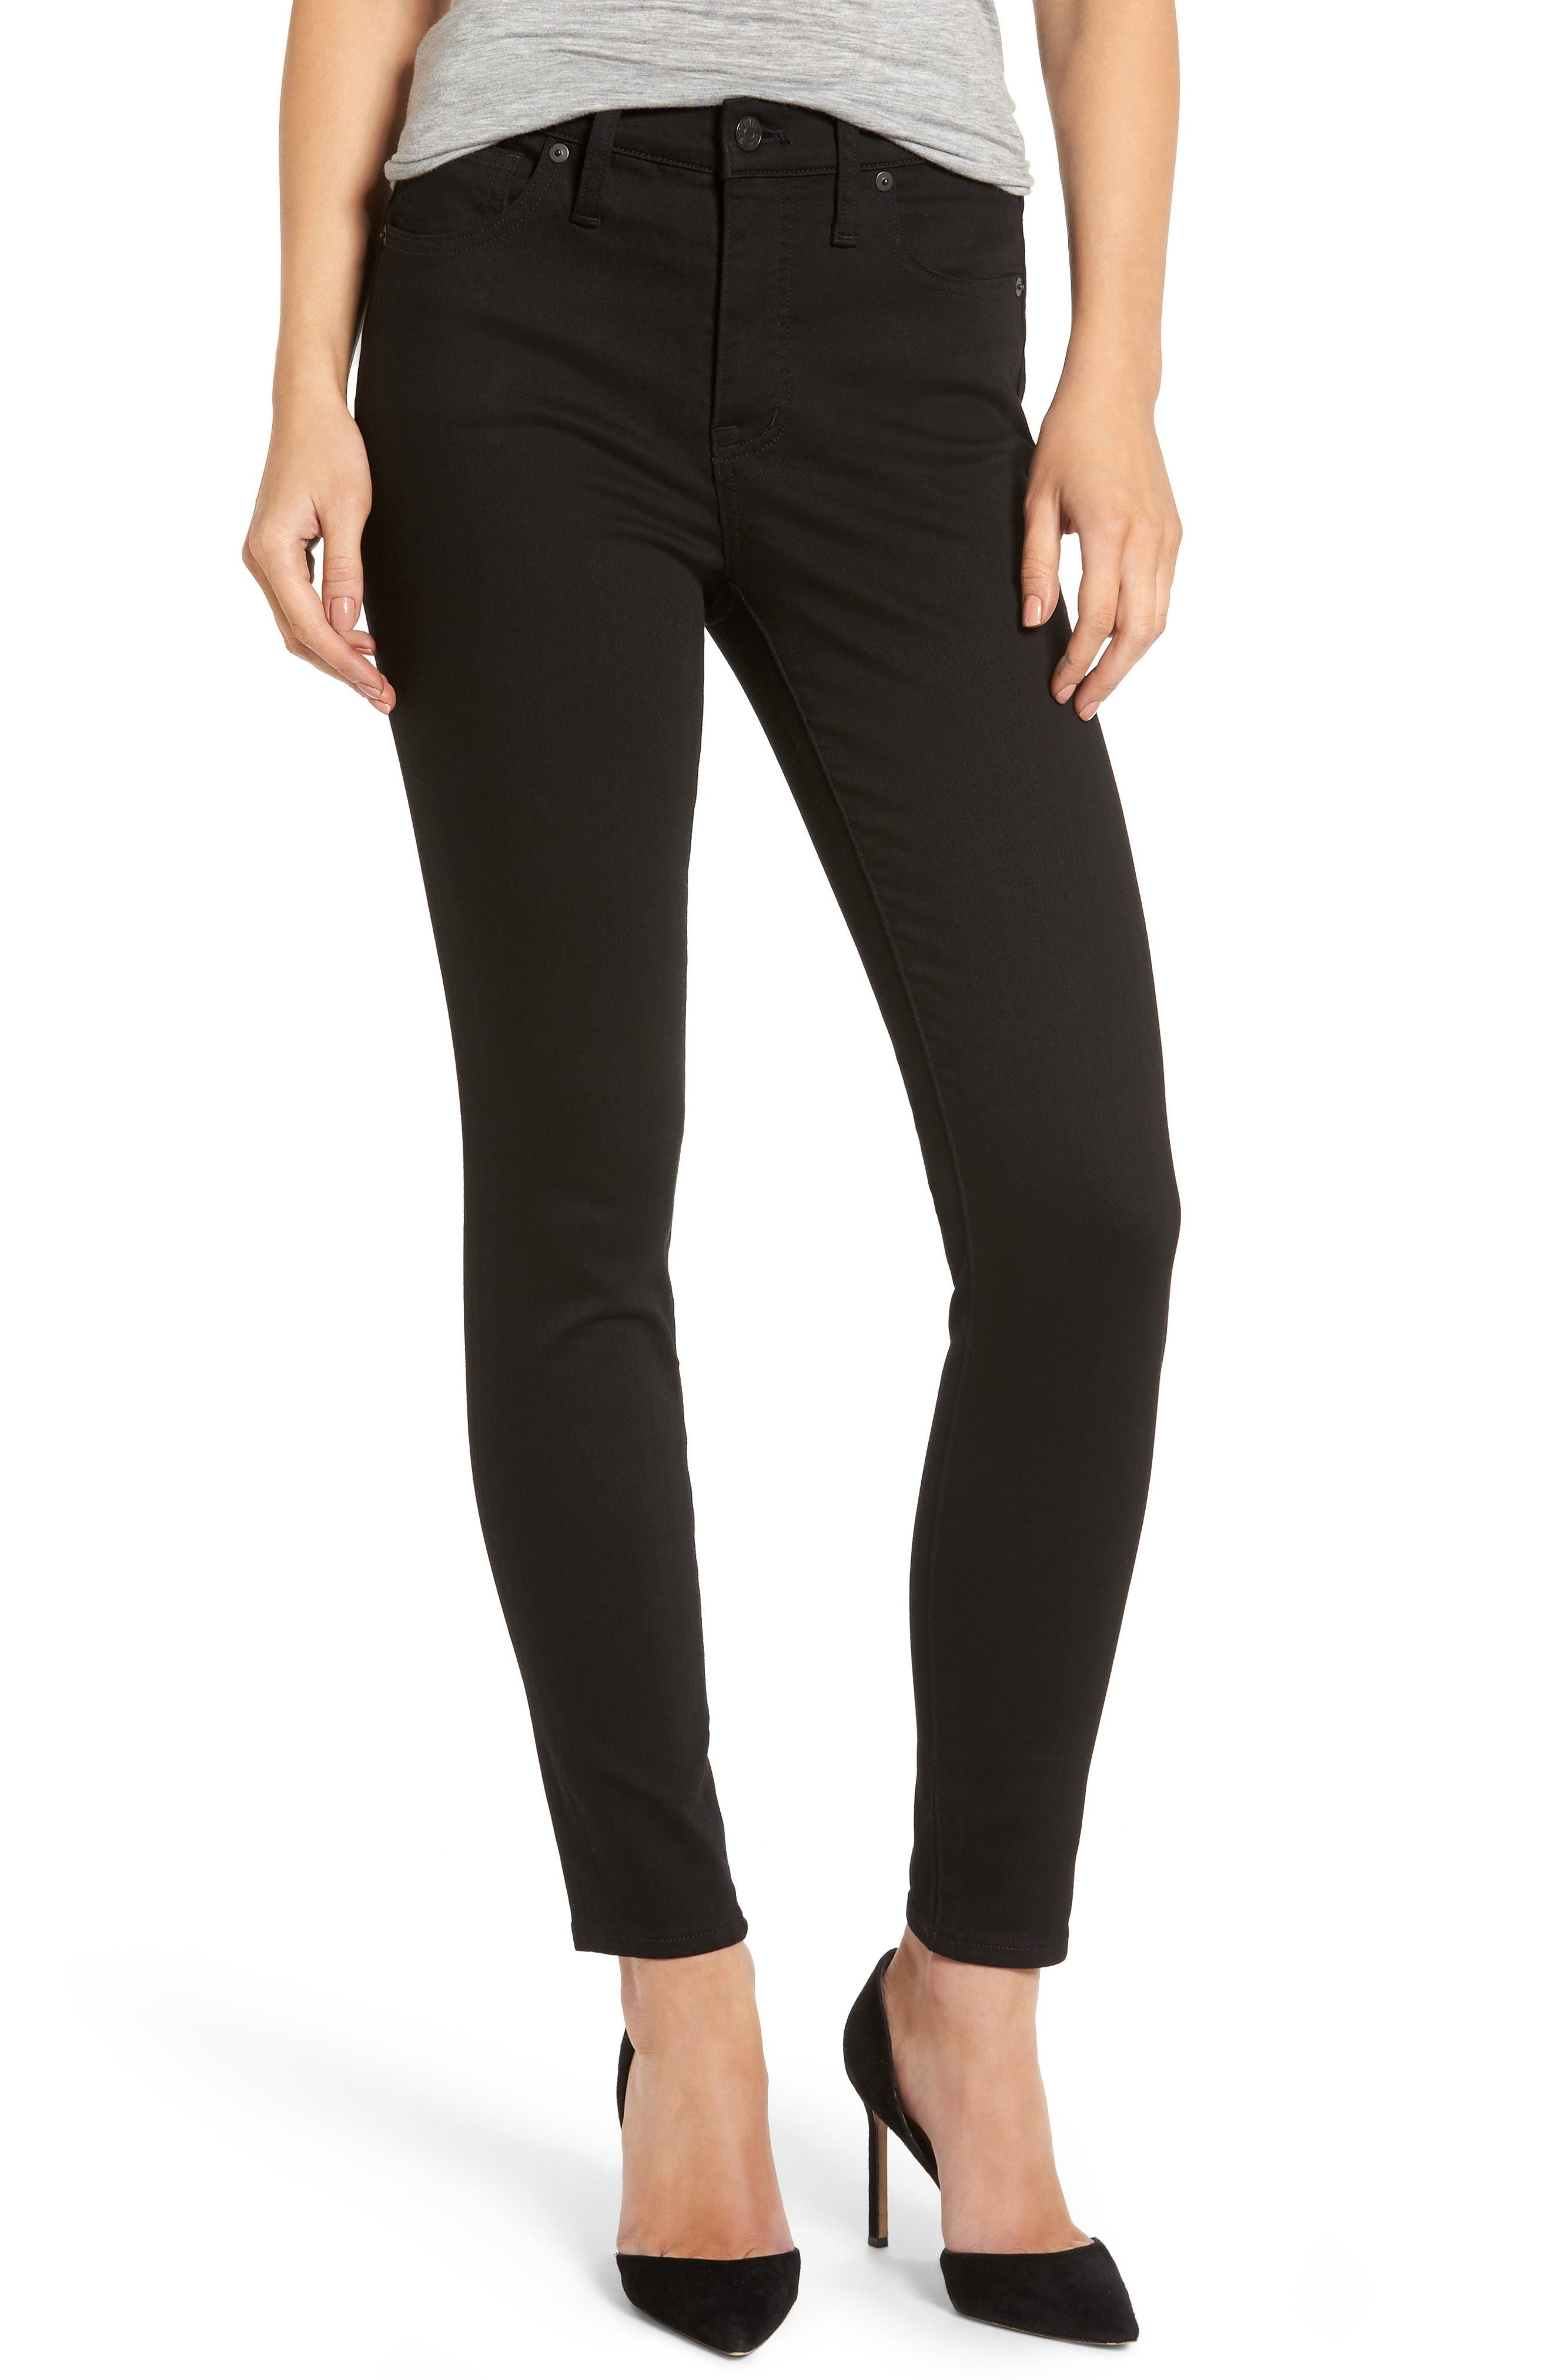 Main Image - Madewell 9-Inch High-Rise Skinny Jeans (Isko Stay Black™)